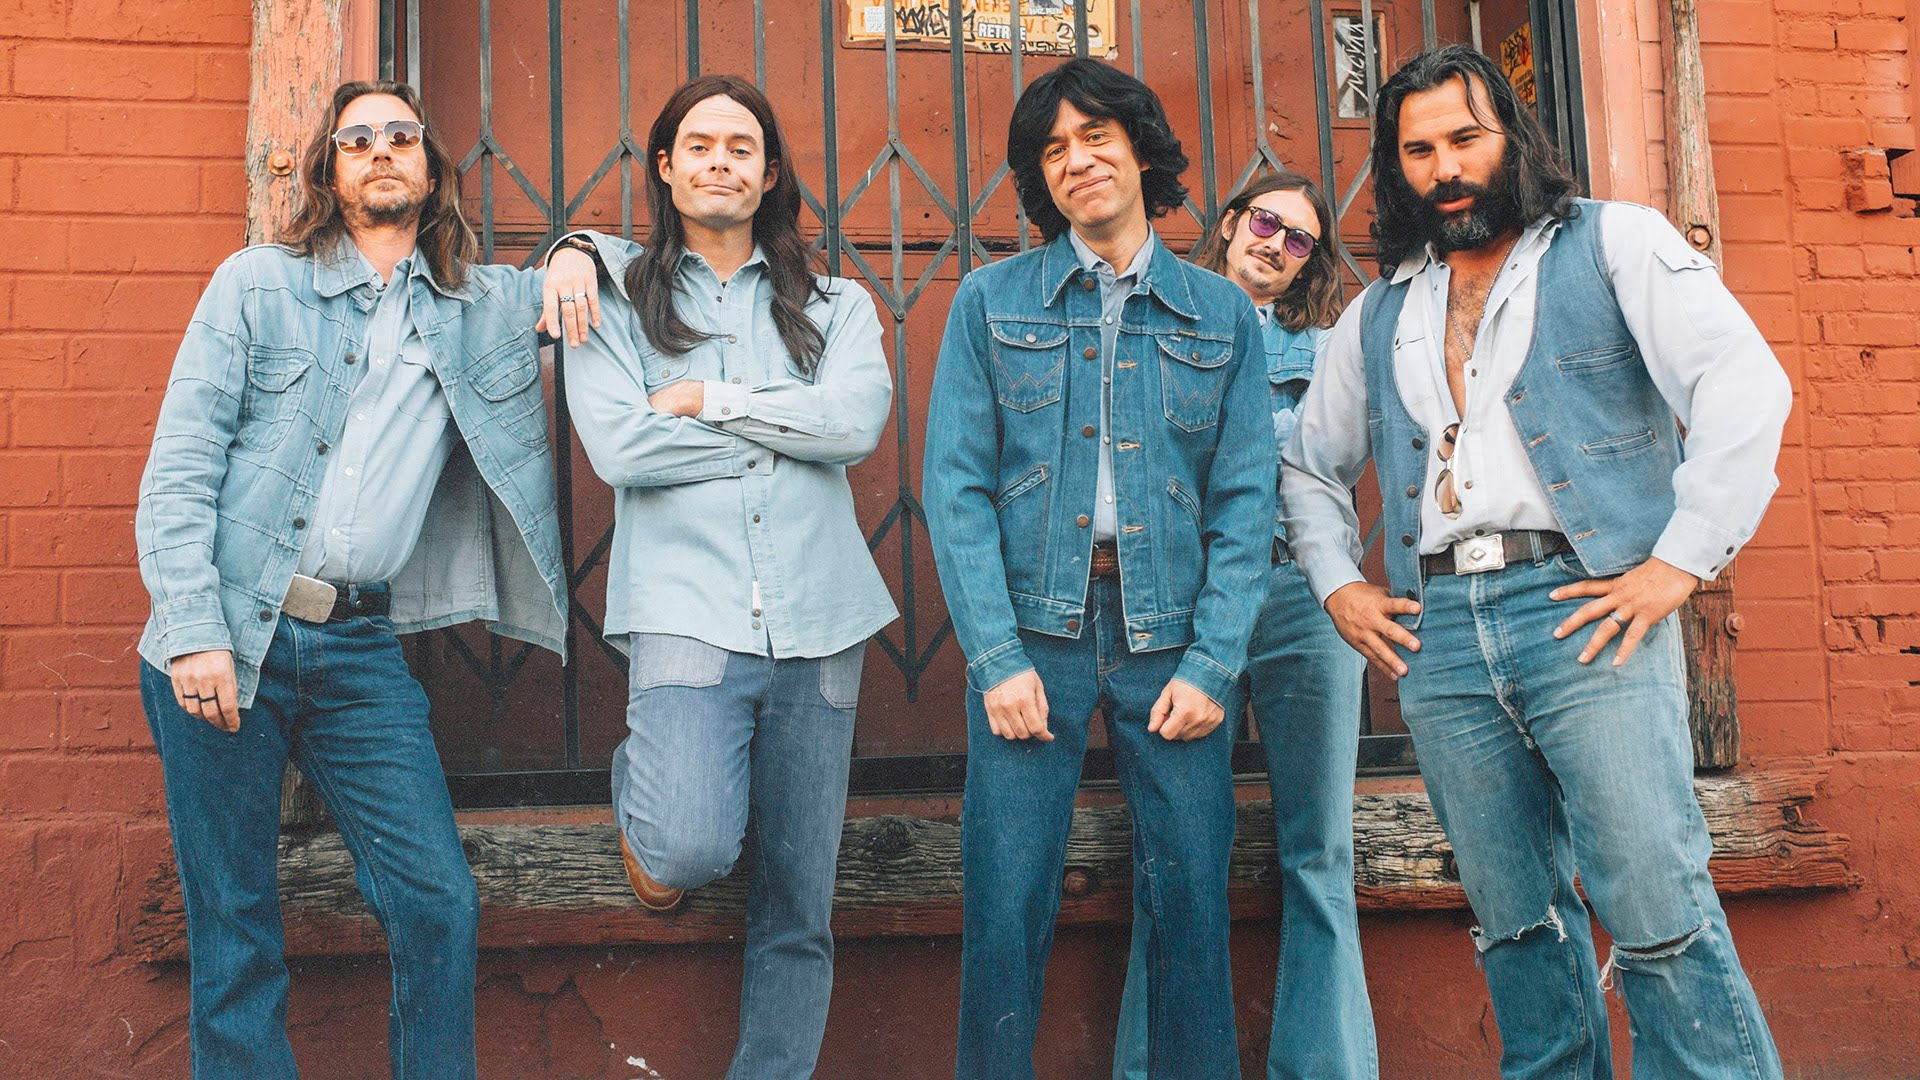 Gentle and Soft: The Story of the Blue Jean Committee